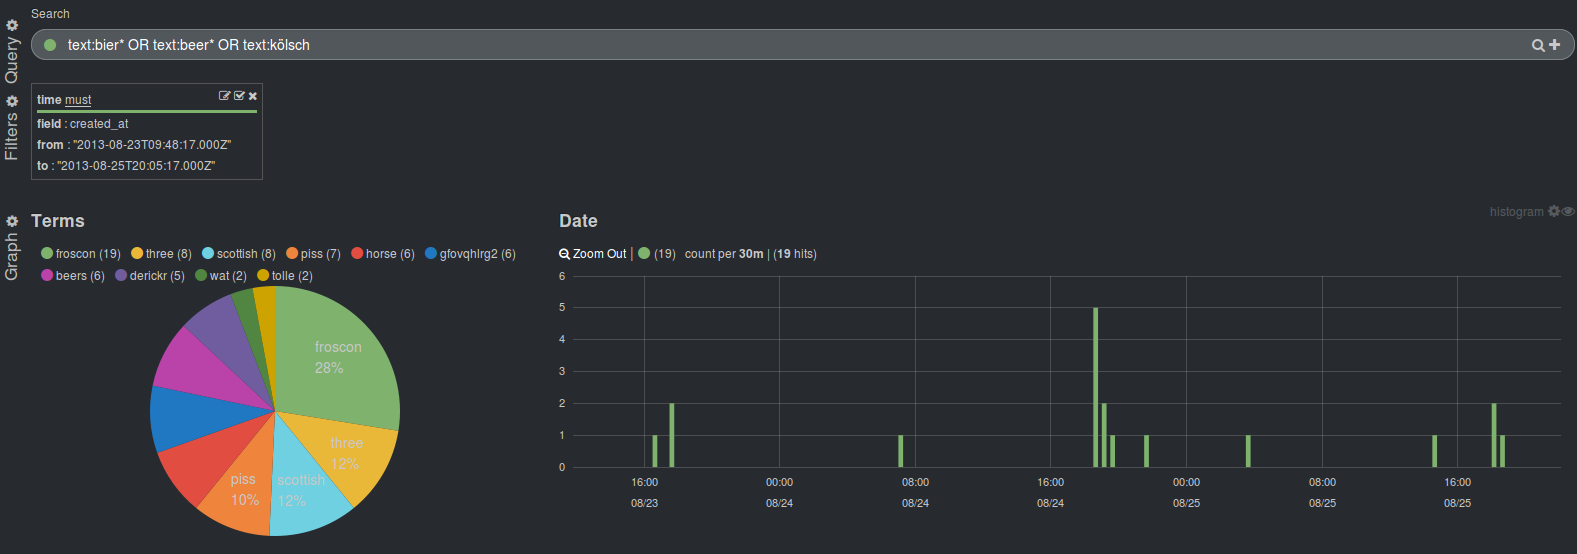 Kibana and Elasticsearch: See What Tweets Can Say About a Conference